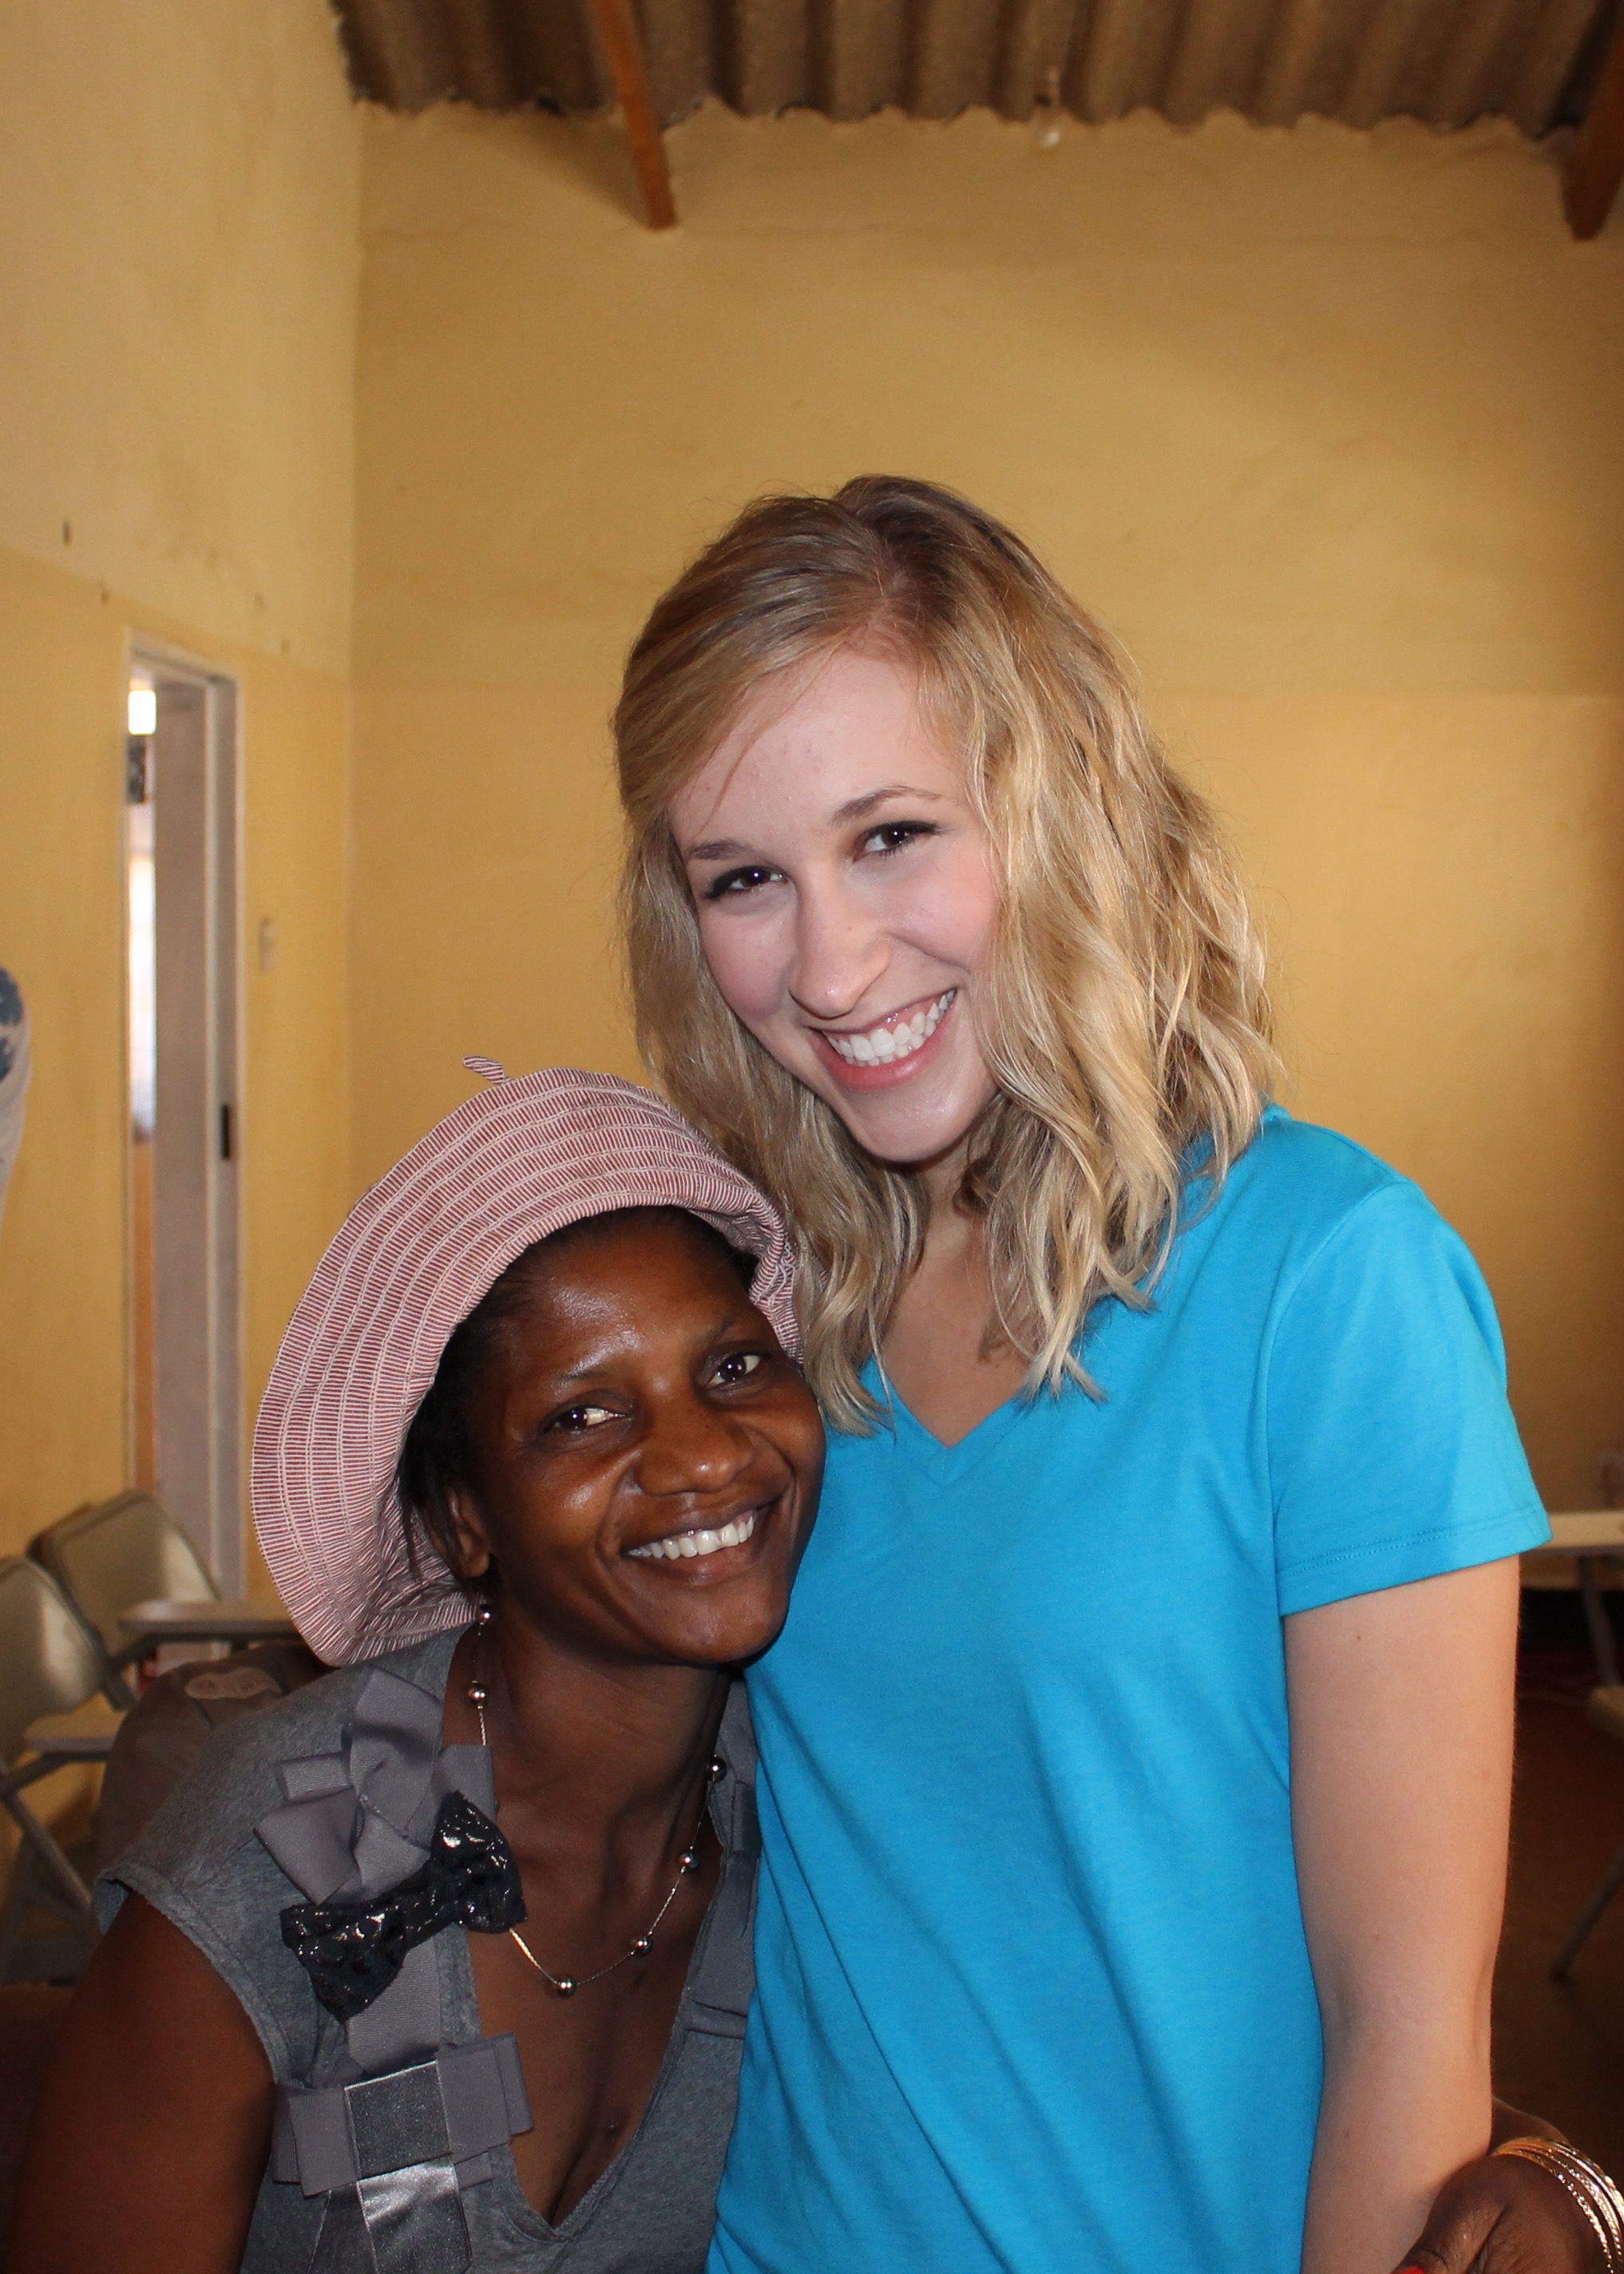 Elina and I in July 2012, the launch of CiH in Zambia